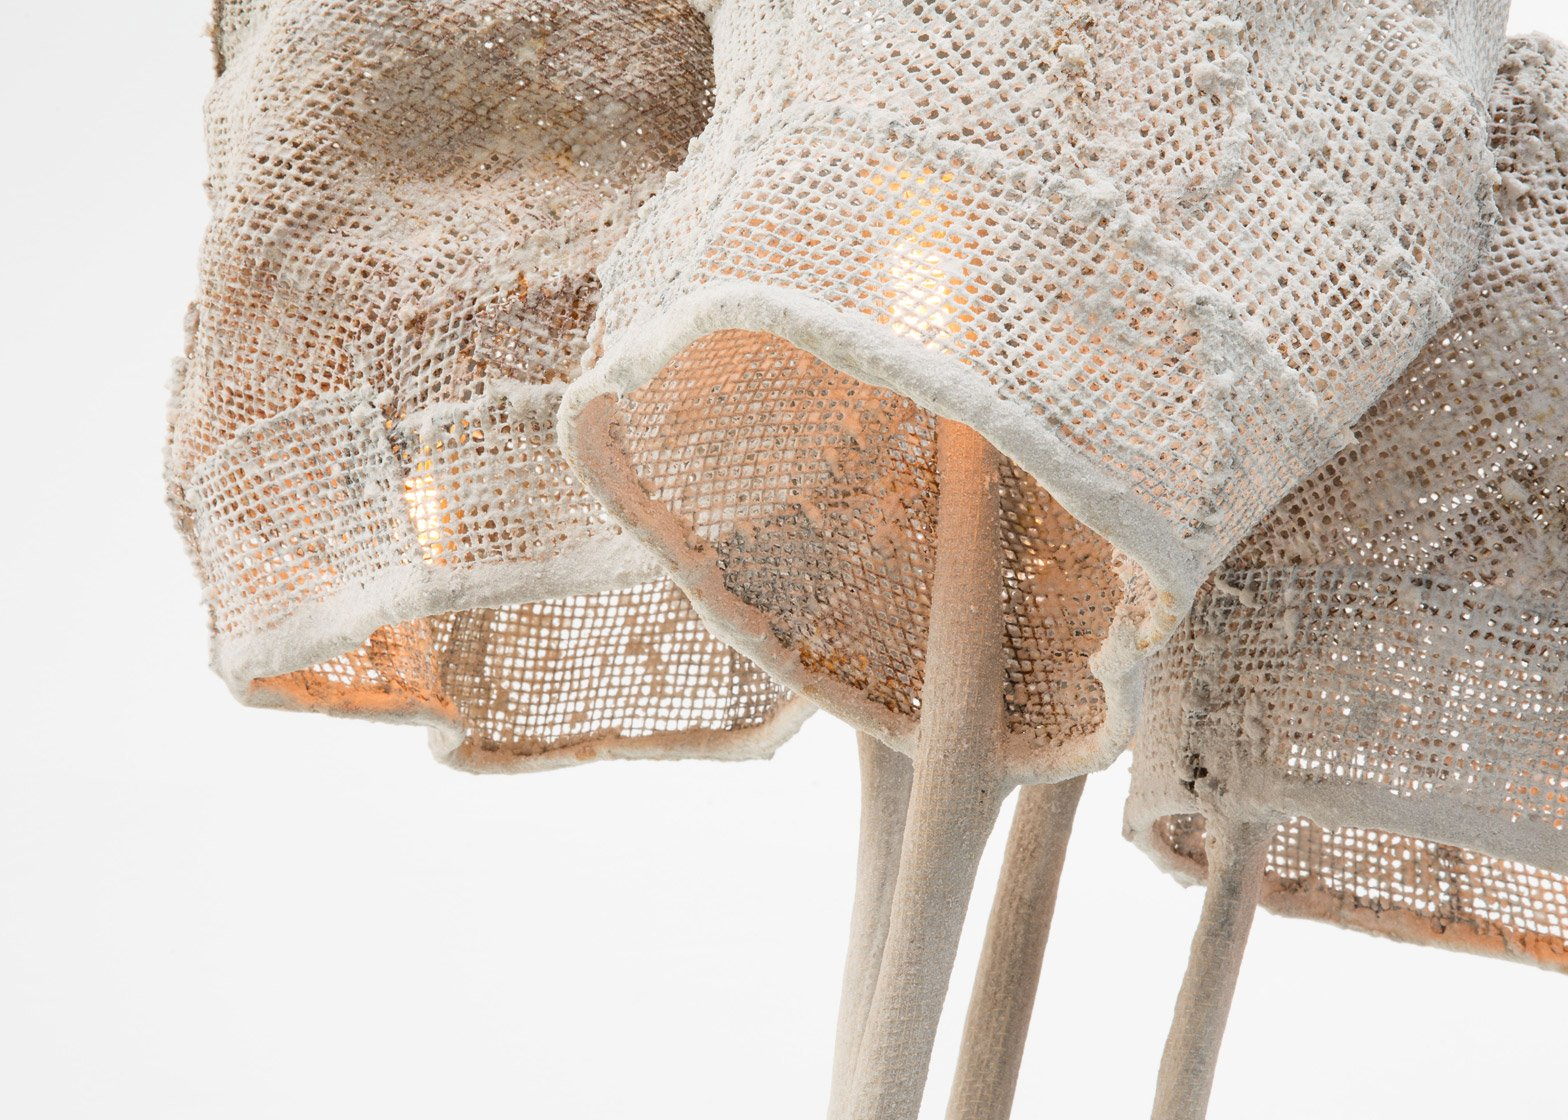 Light Mesh by Nacho Carbonell Carpenters Workshop, Gallery Exhibition London